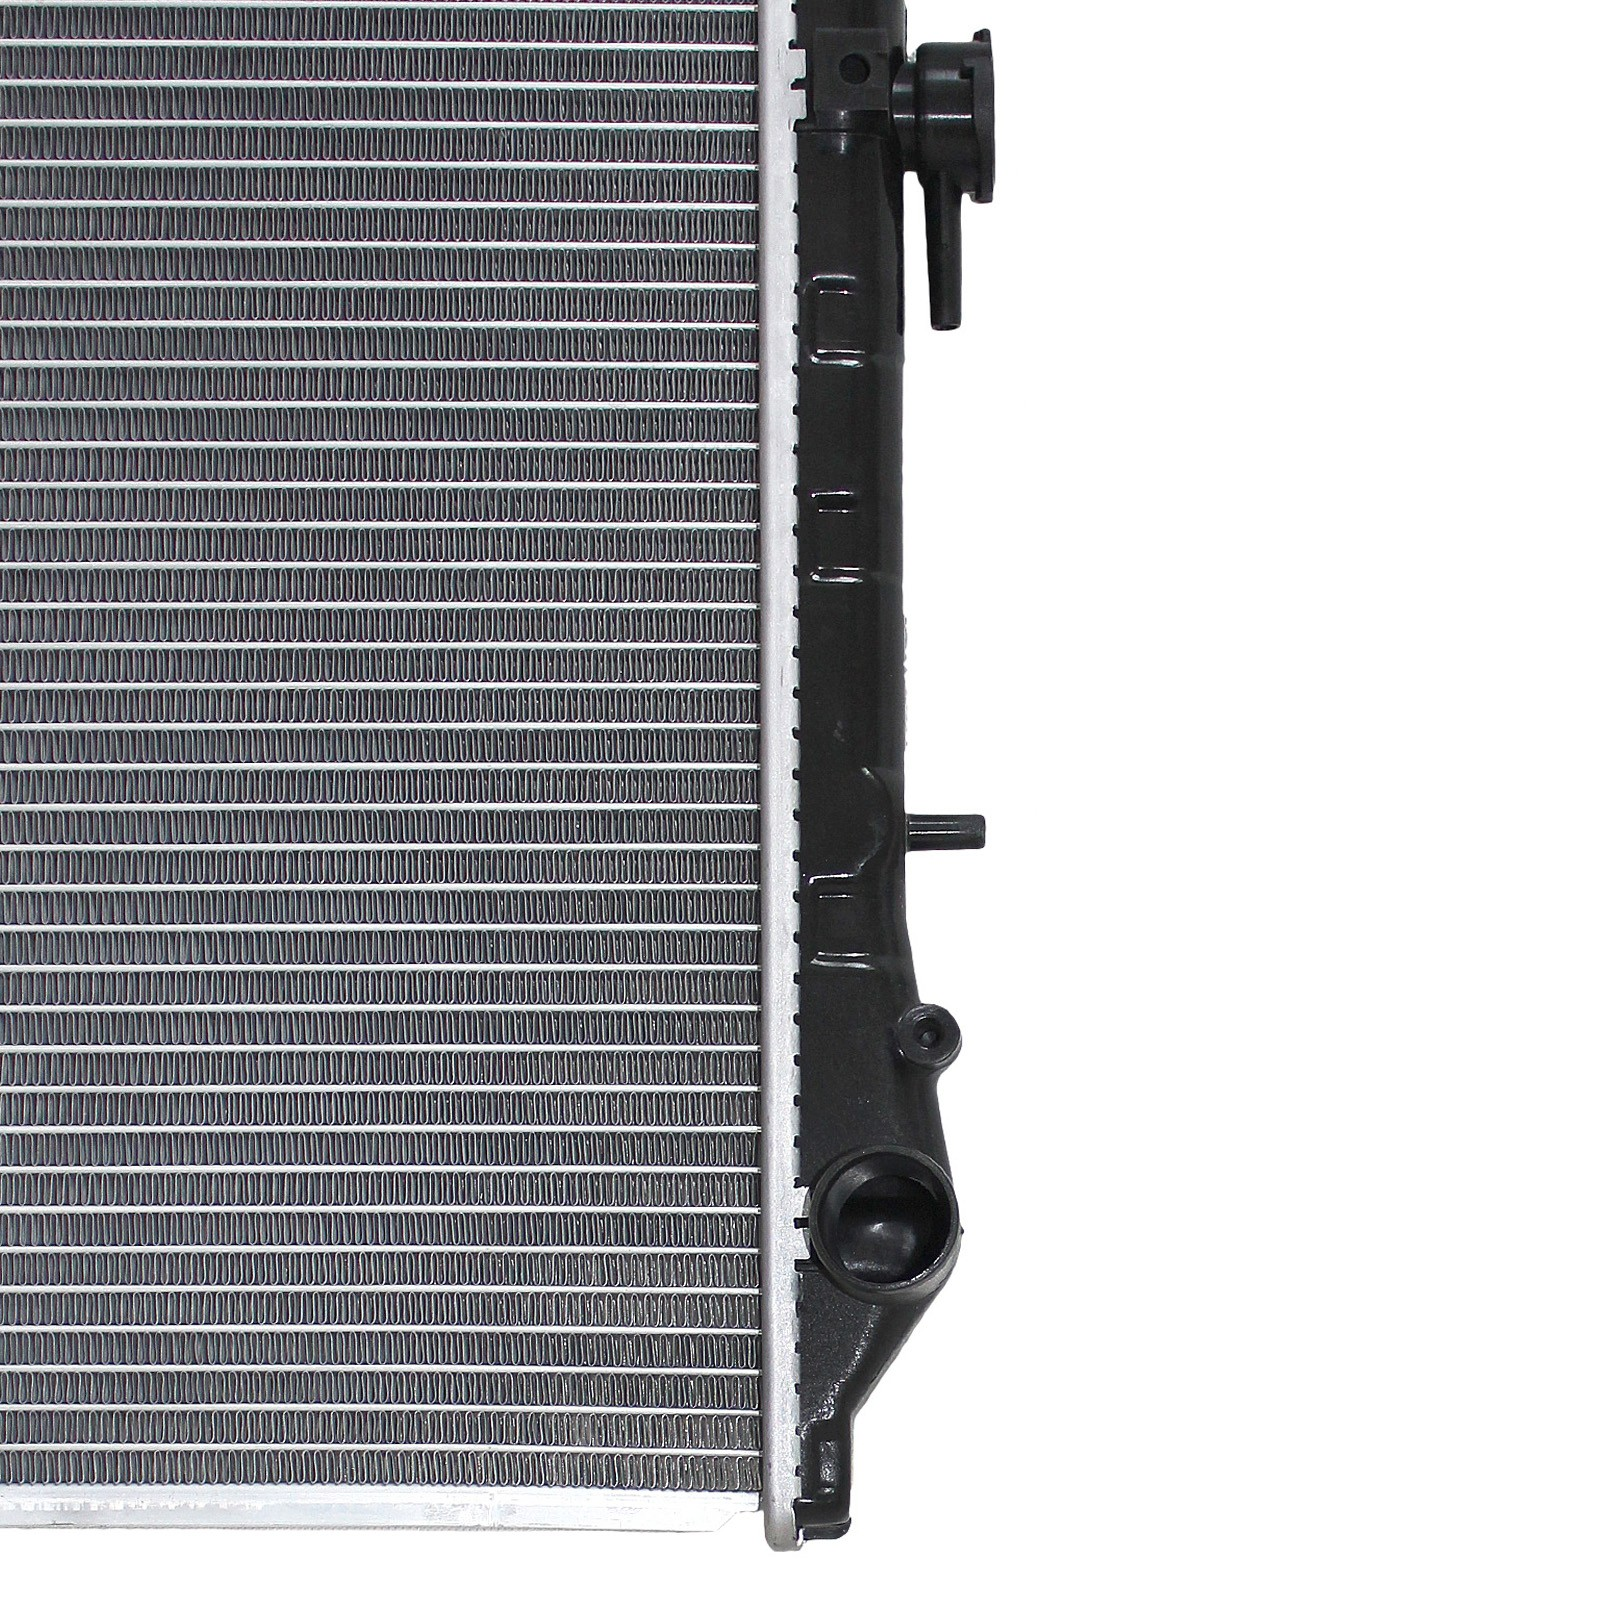 Dromedary-Mercedes Radiator Manufacture | New Radiator For 90-96 Nissan 300zx 30l-6